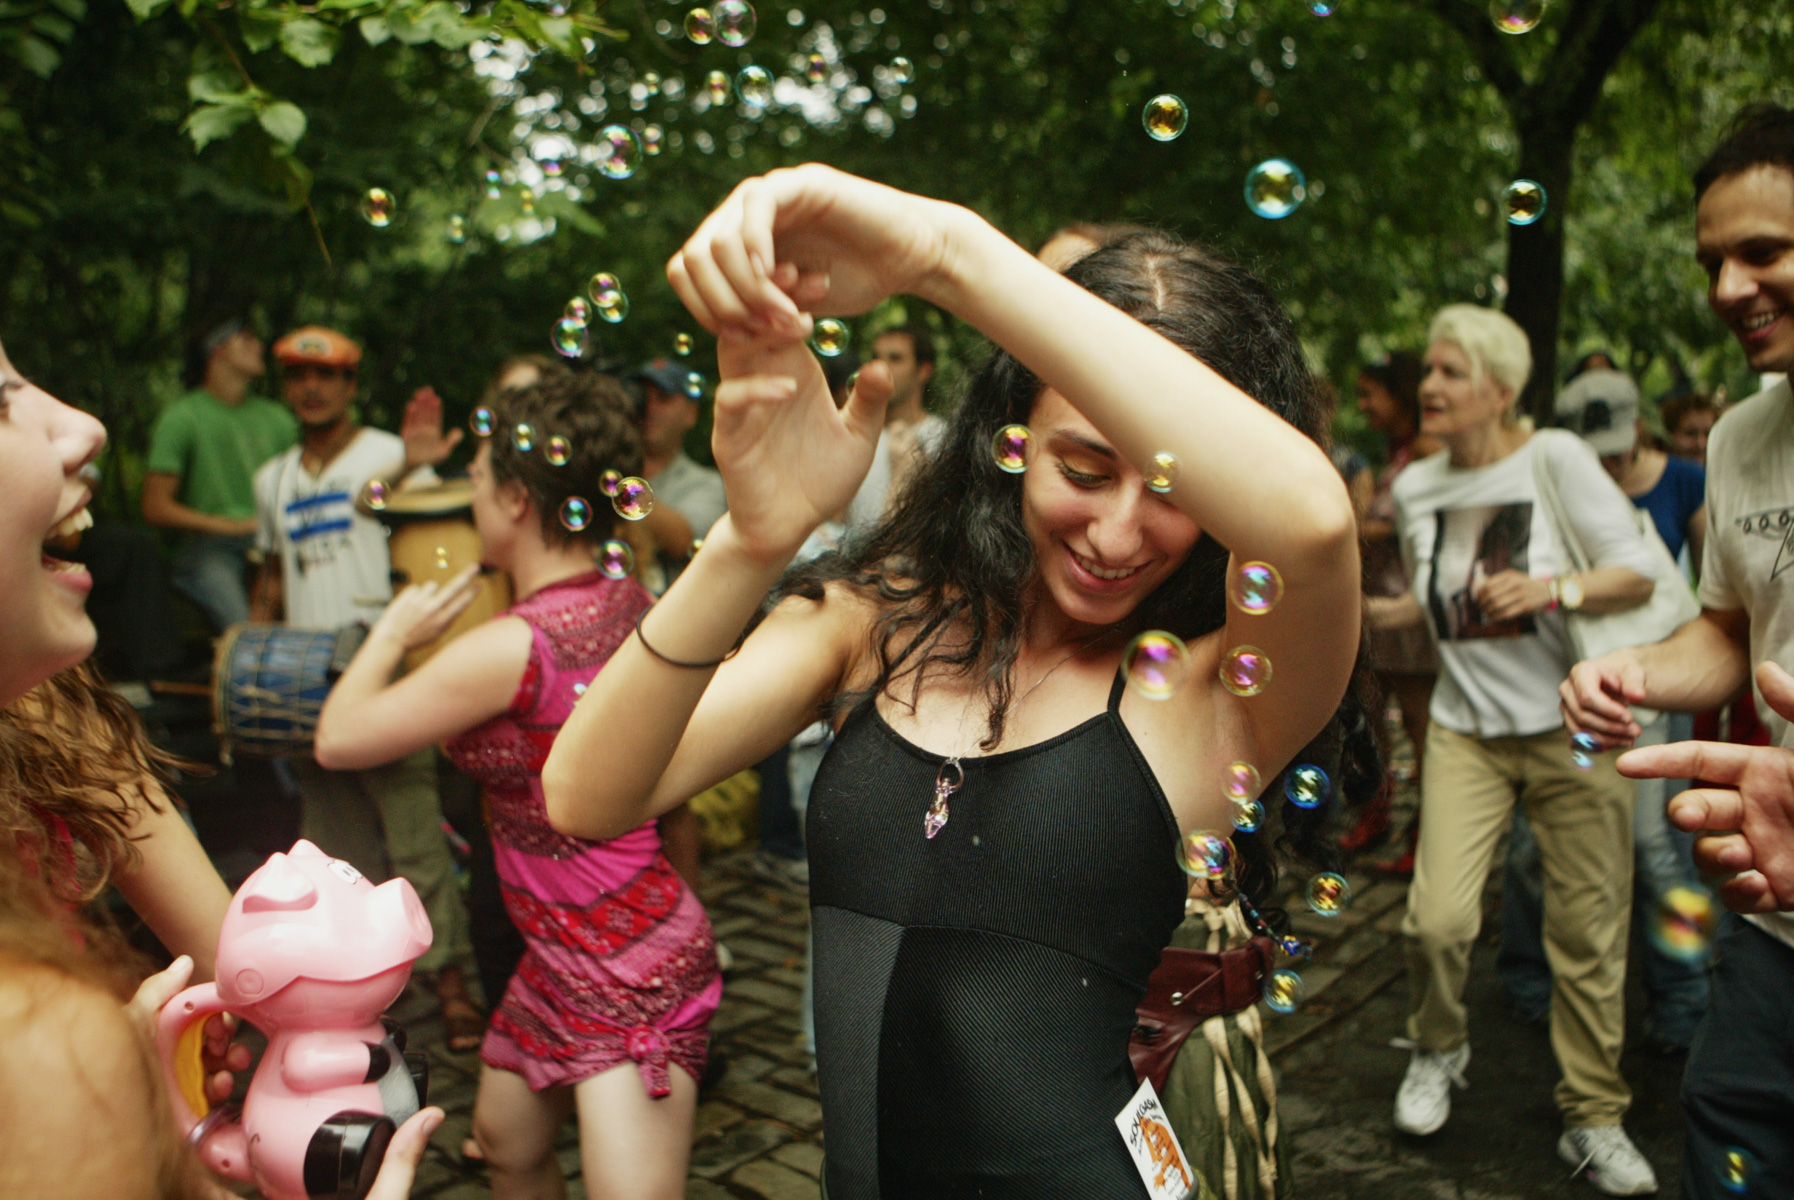 7/22/06 Manhattan, NY -   Outdoor dance event near Mayor Bloomberg's house at 79th St & Fifth Ave in an effort to bring attention to the need for cabaret law reform.Photo Credit Erik Jacobs/The New York TimesAssignment  30027088A